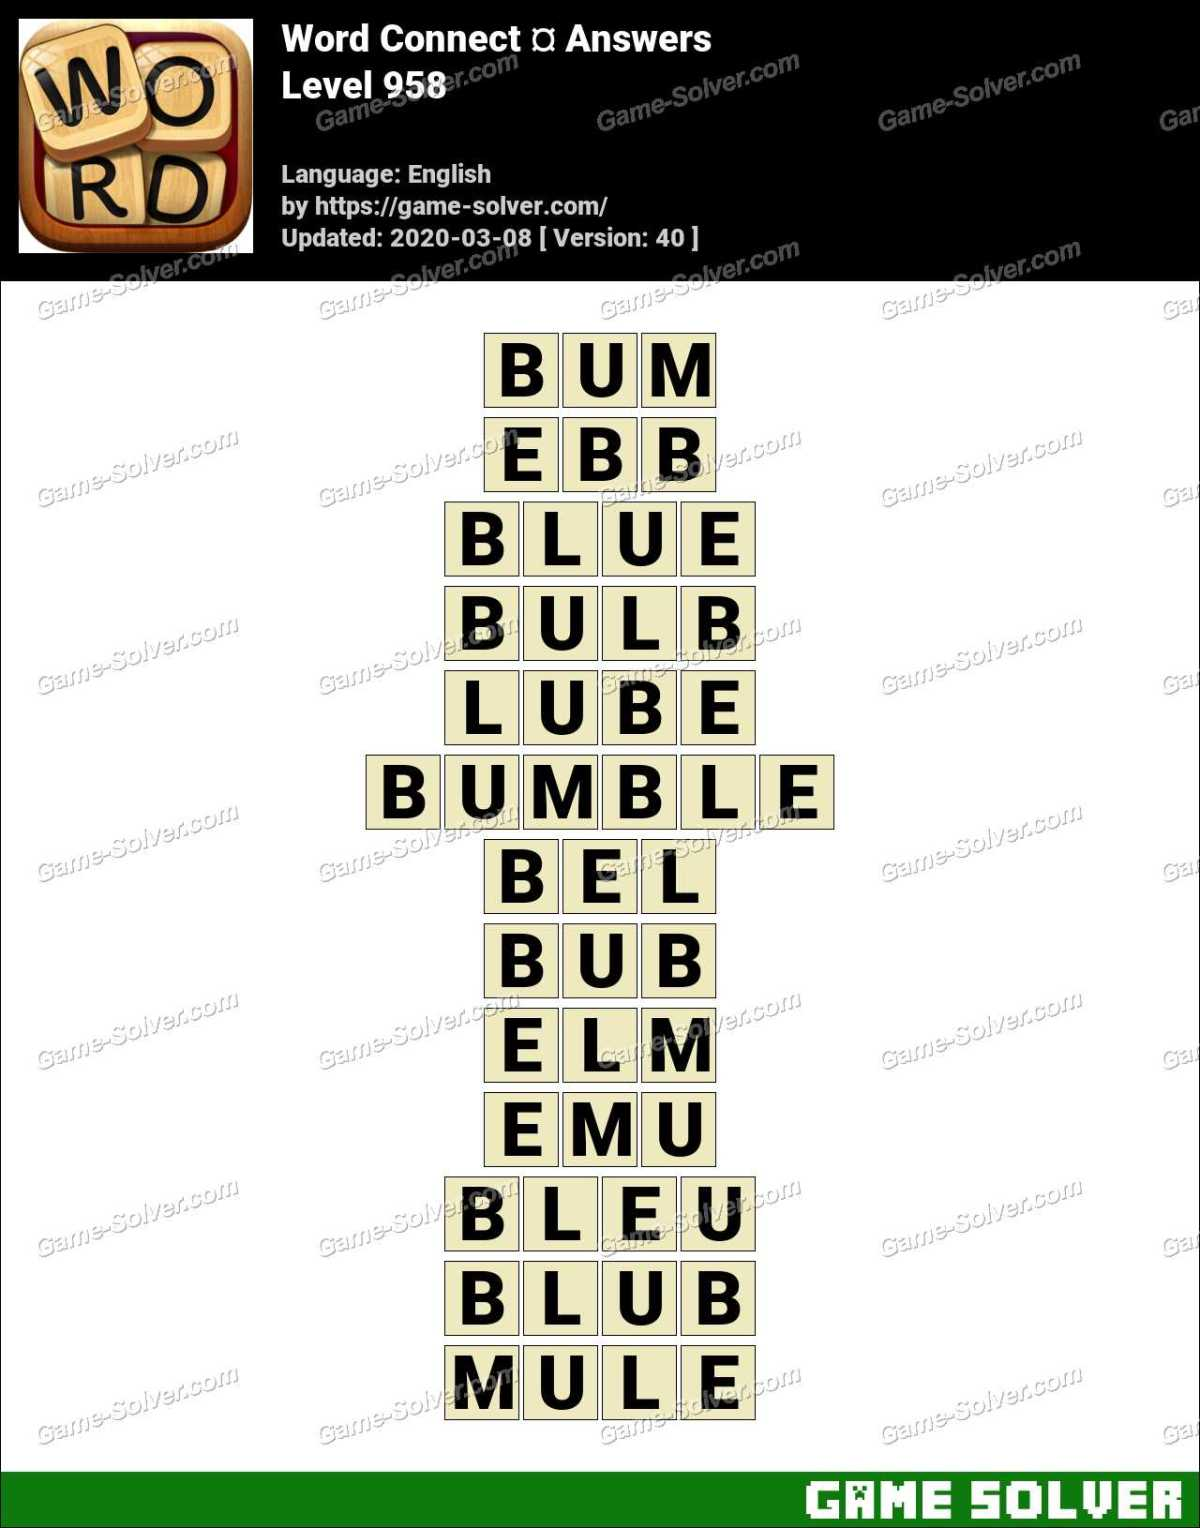 Word Connect Level 958 Answers